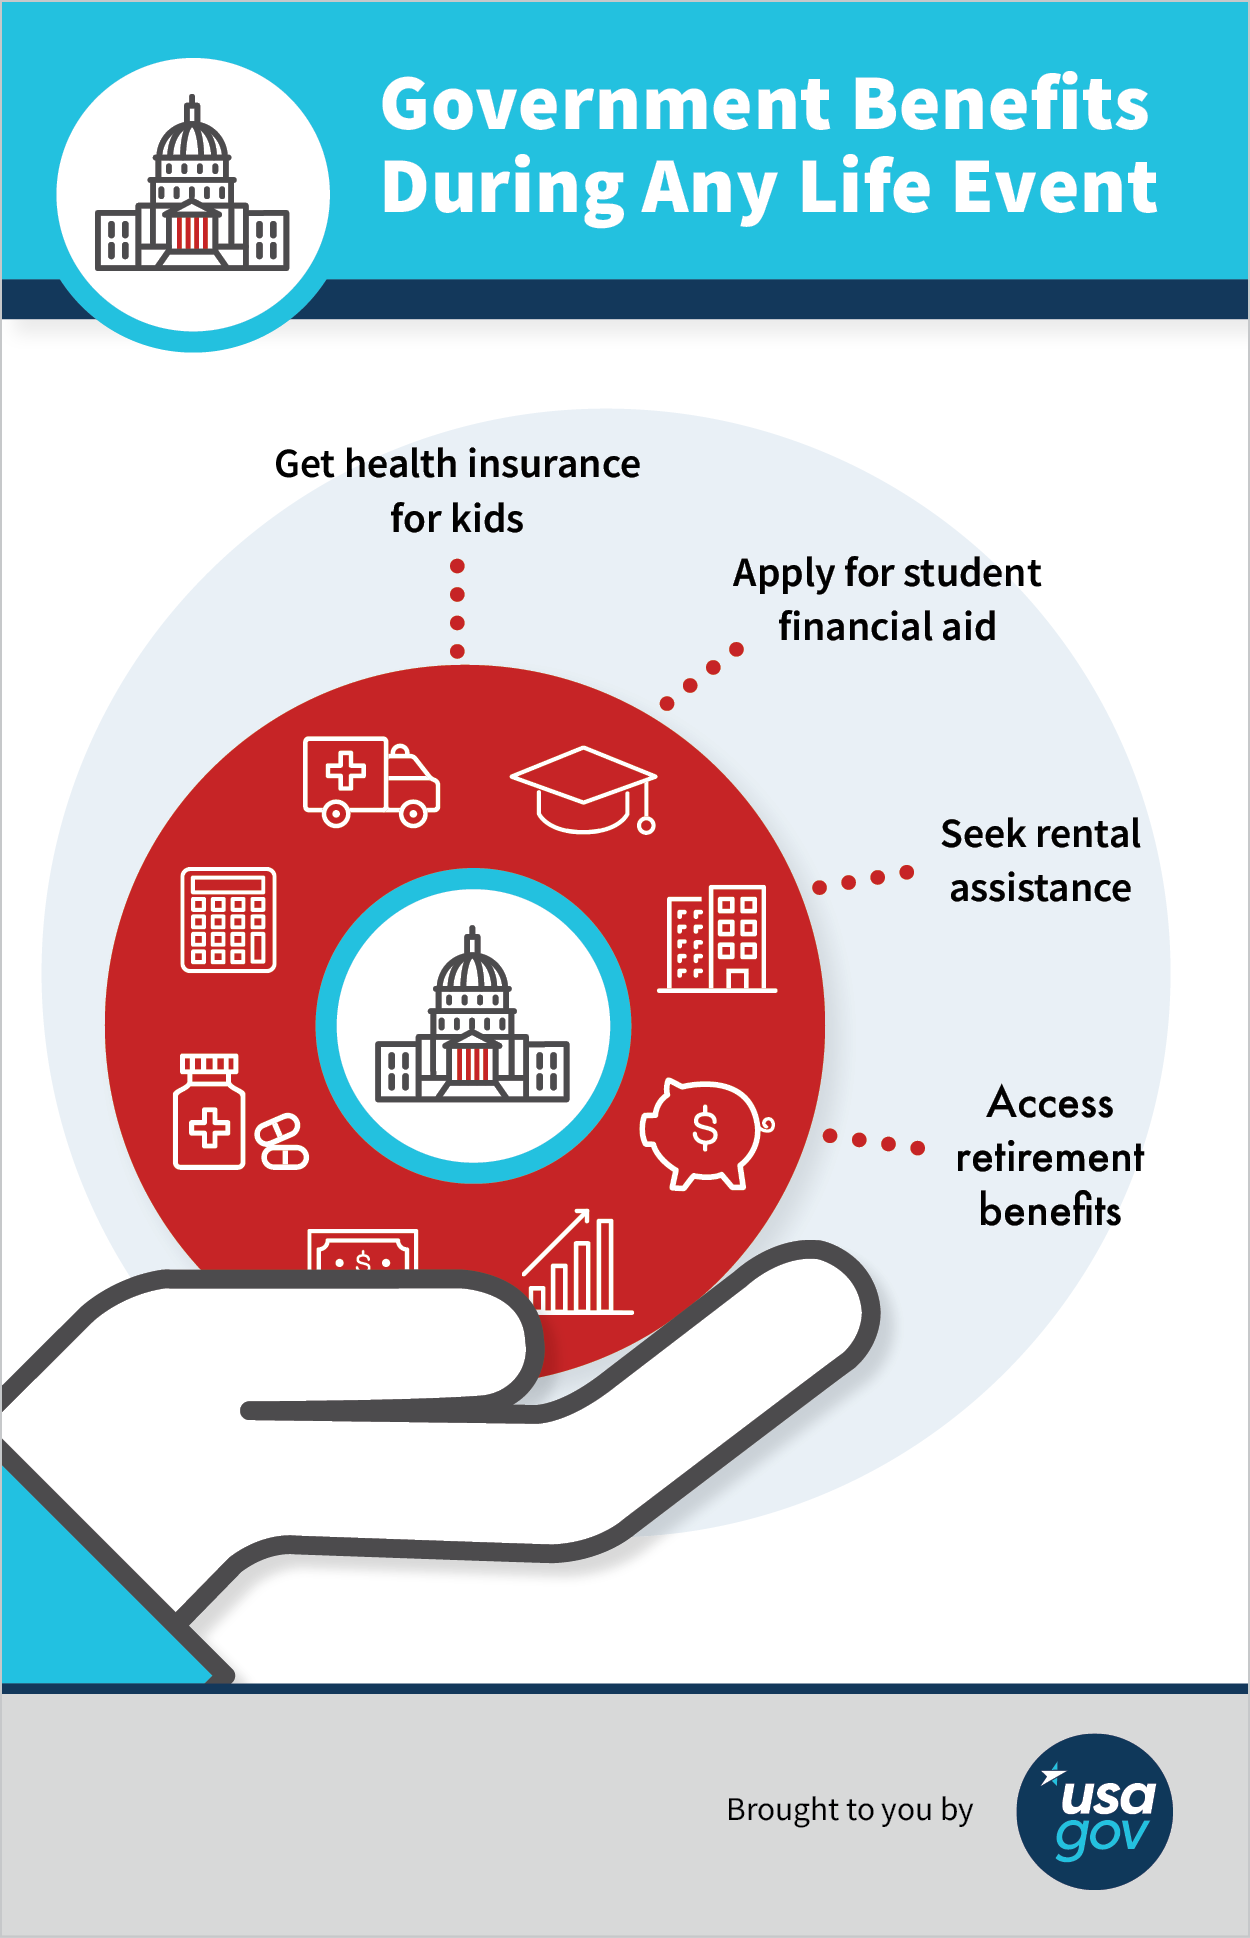 USAGov's Guide To Government Benefits During Any Life Event